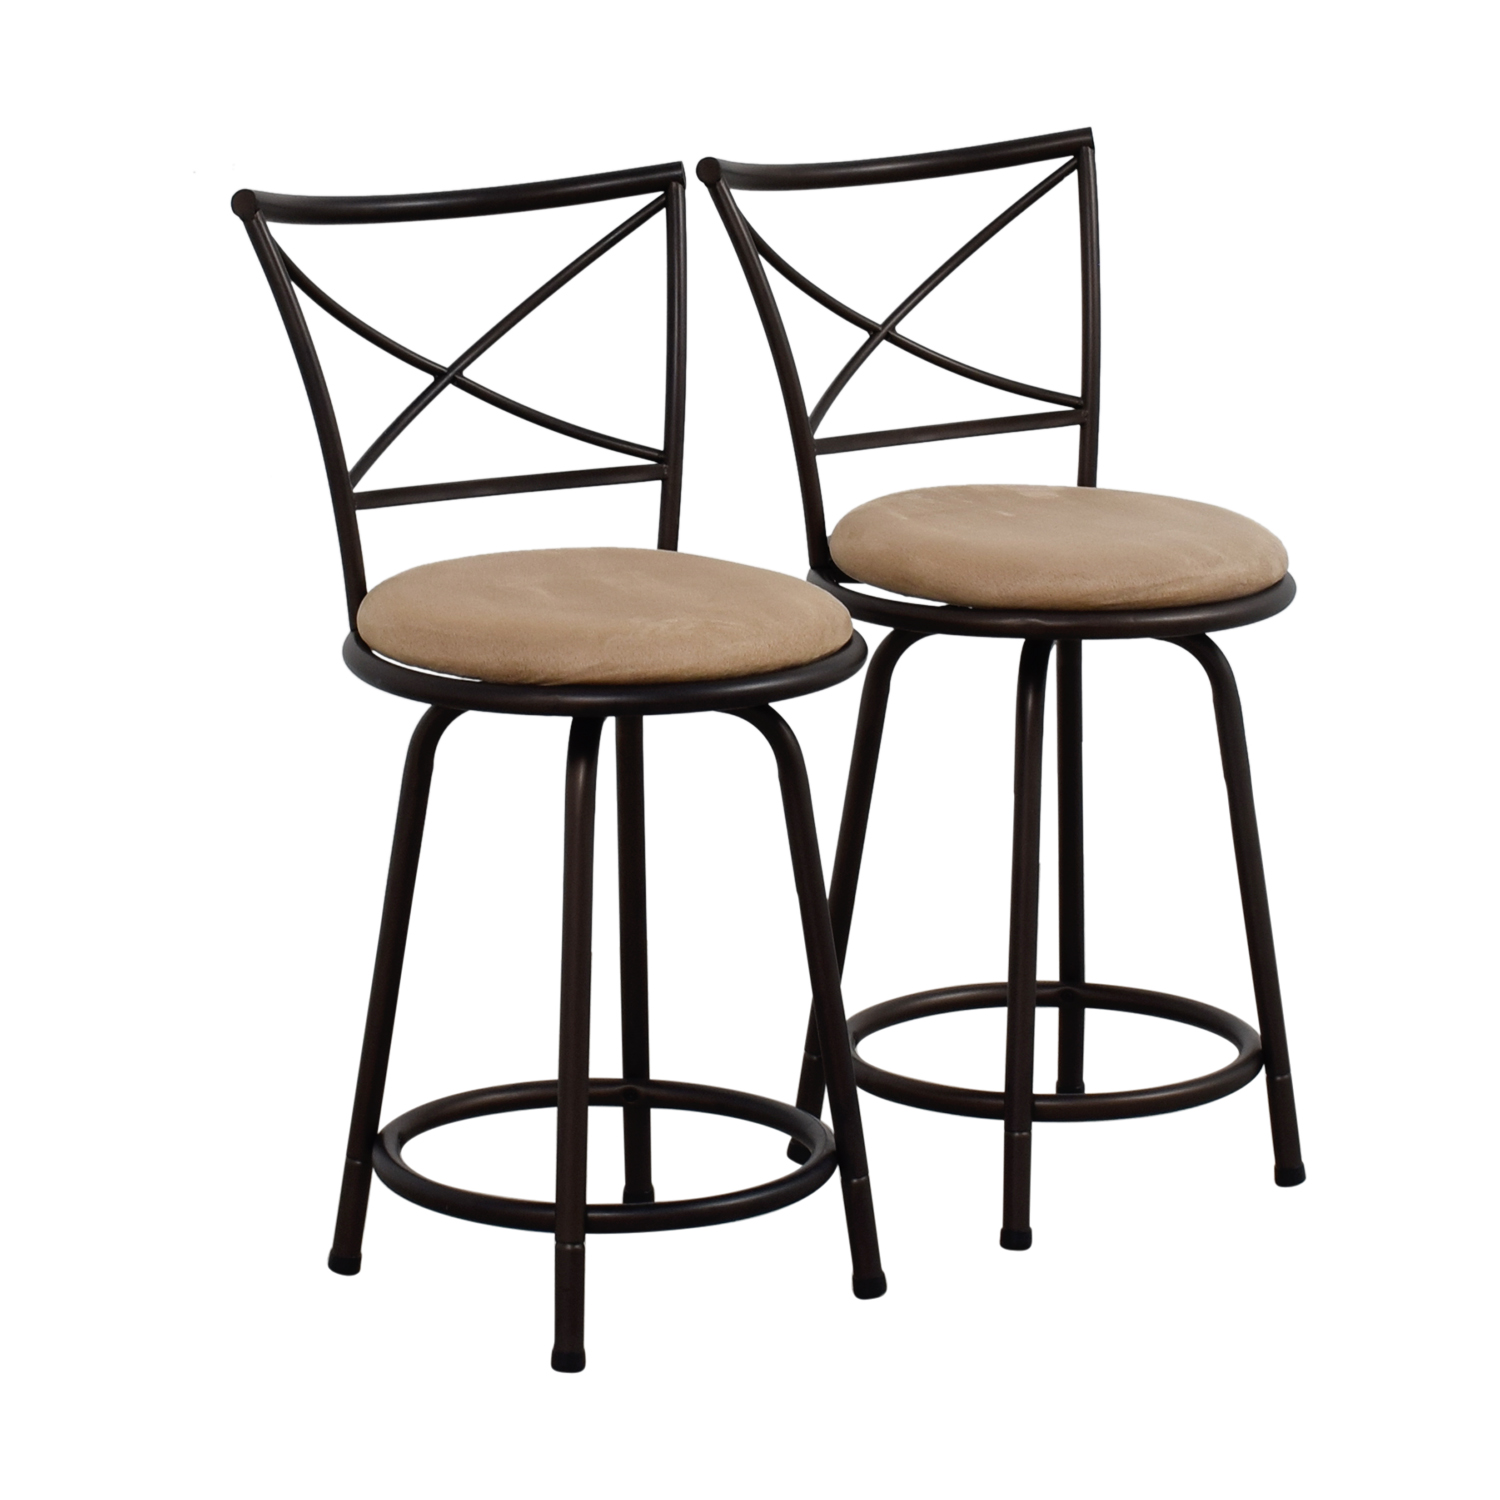 stool chair big w chaise lounge chairs for outside 71 off lots tan cushioned swivel barstools